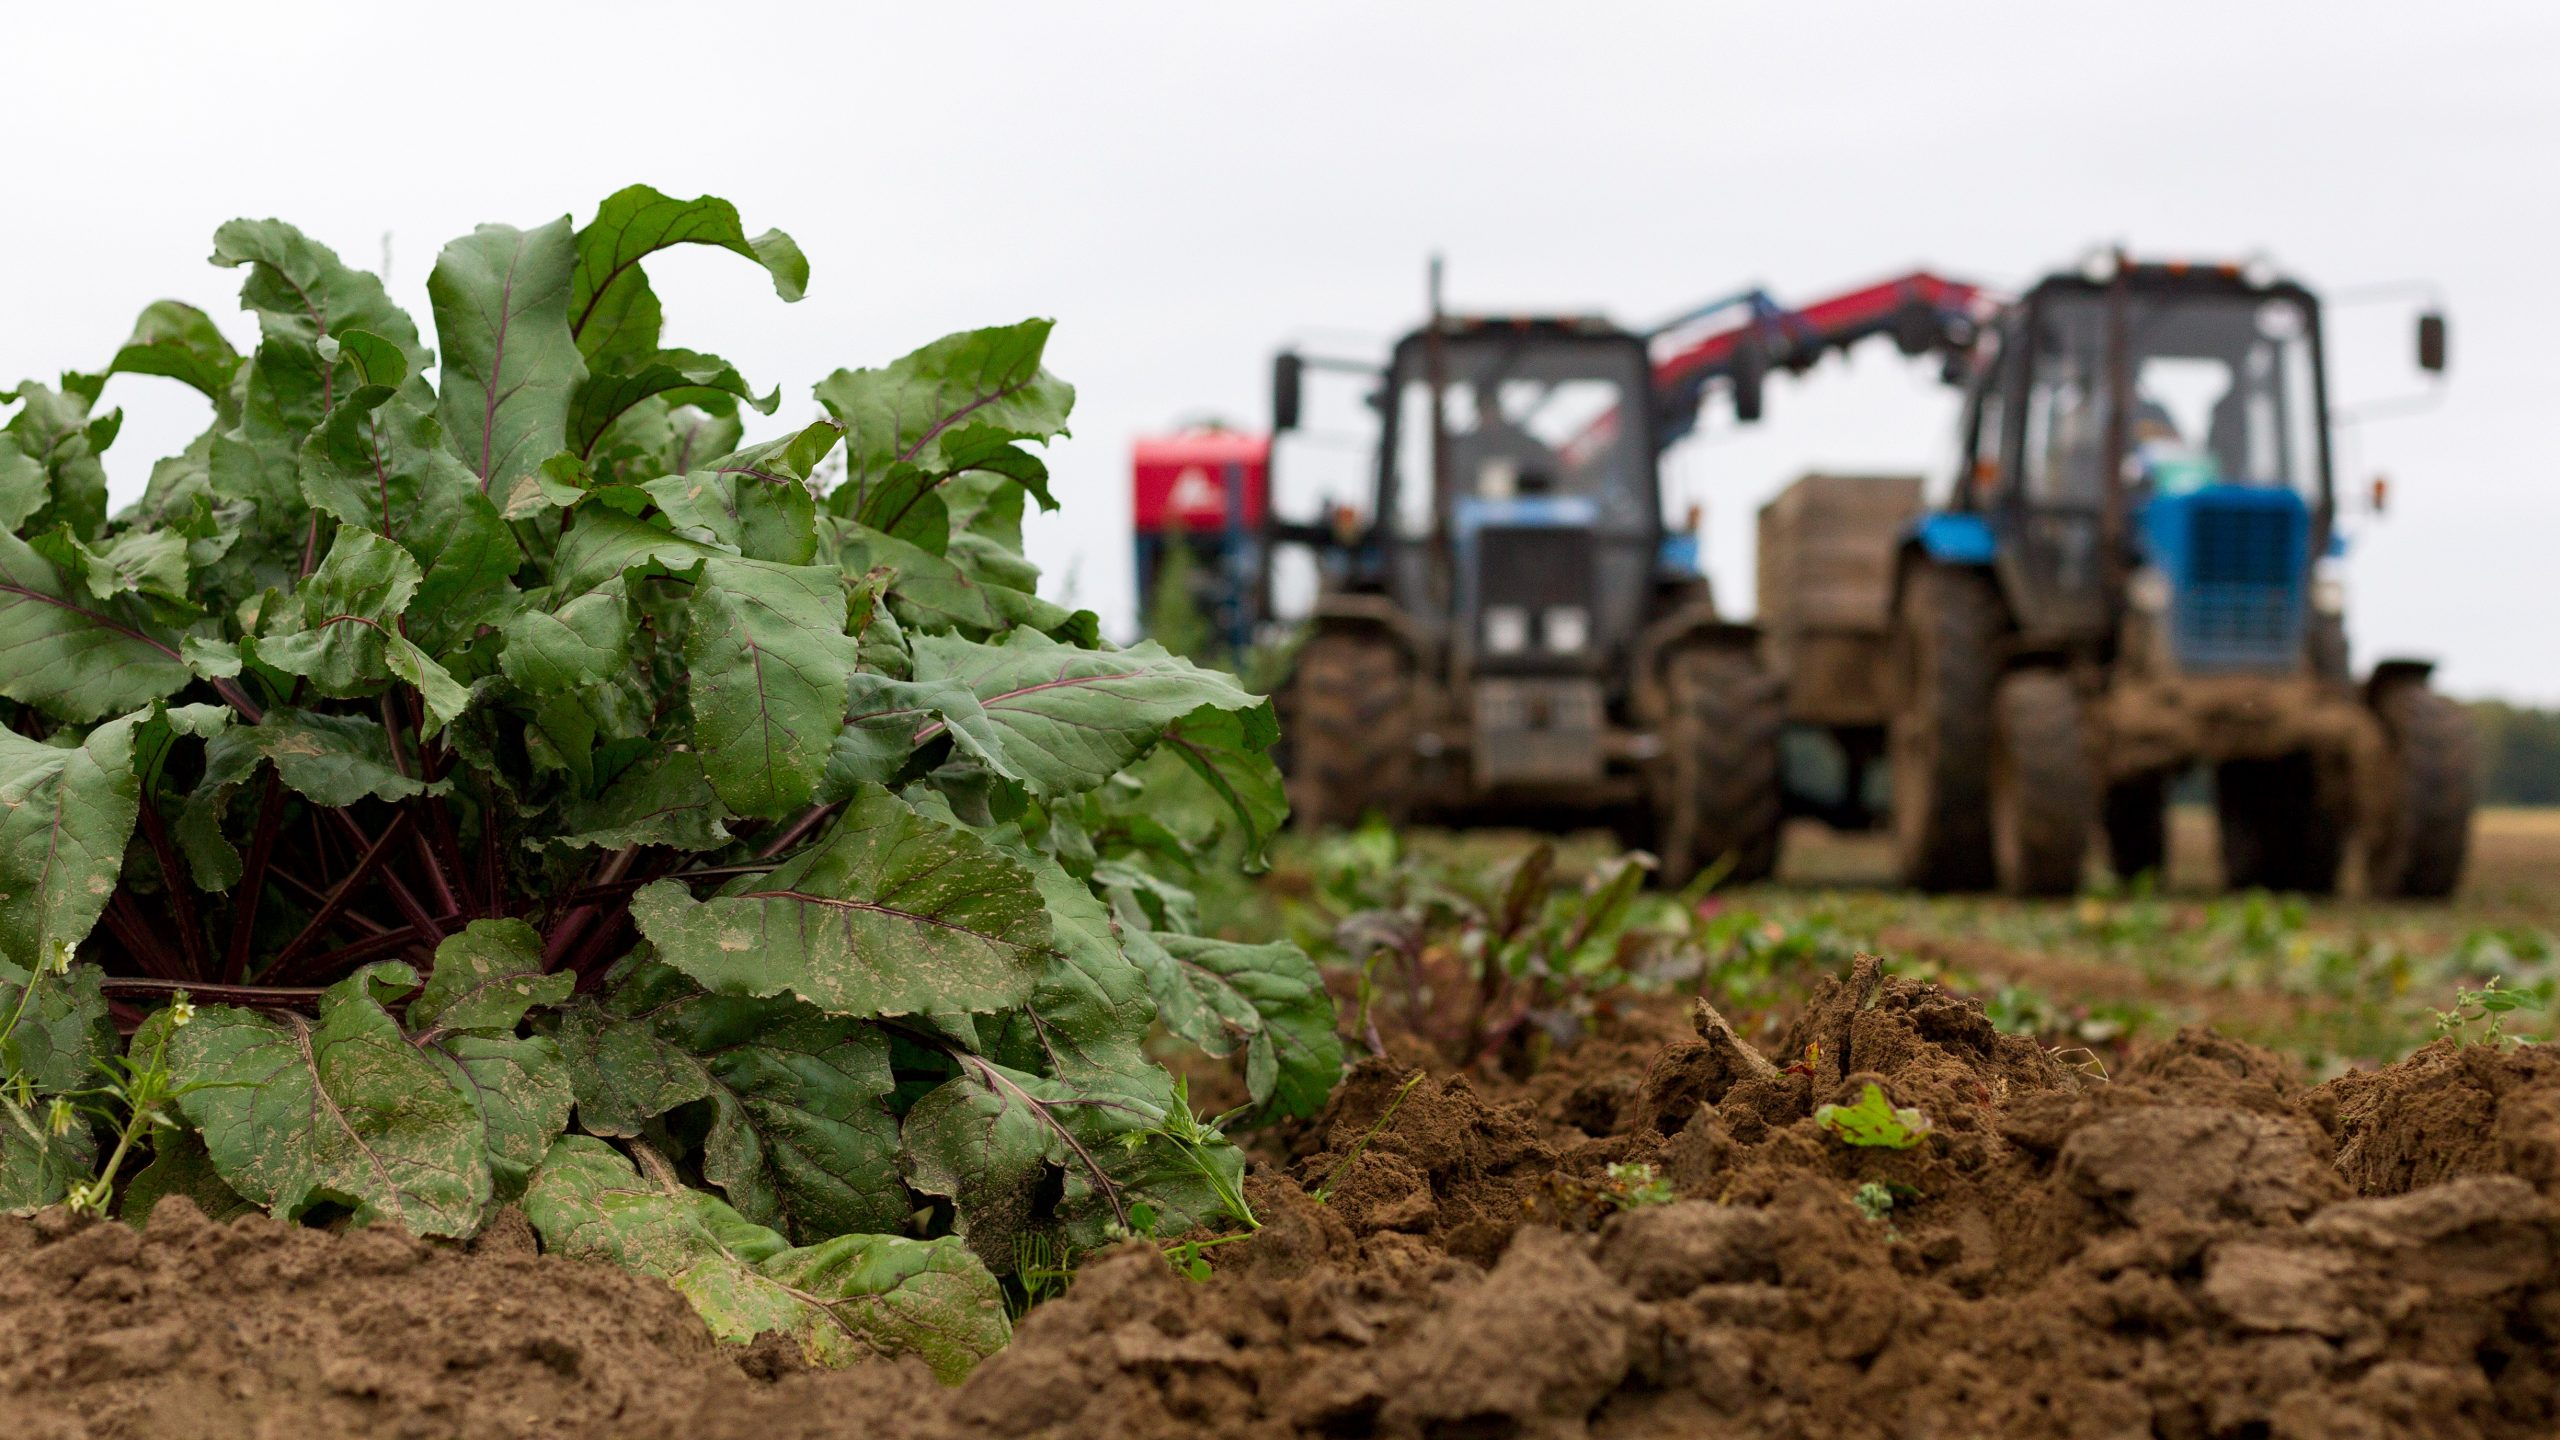 What are carbohydrates - agriculture machinery harvesting beet field